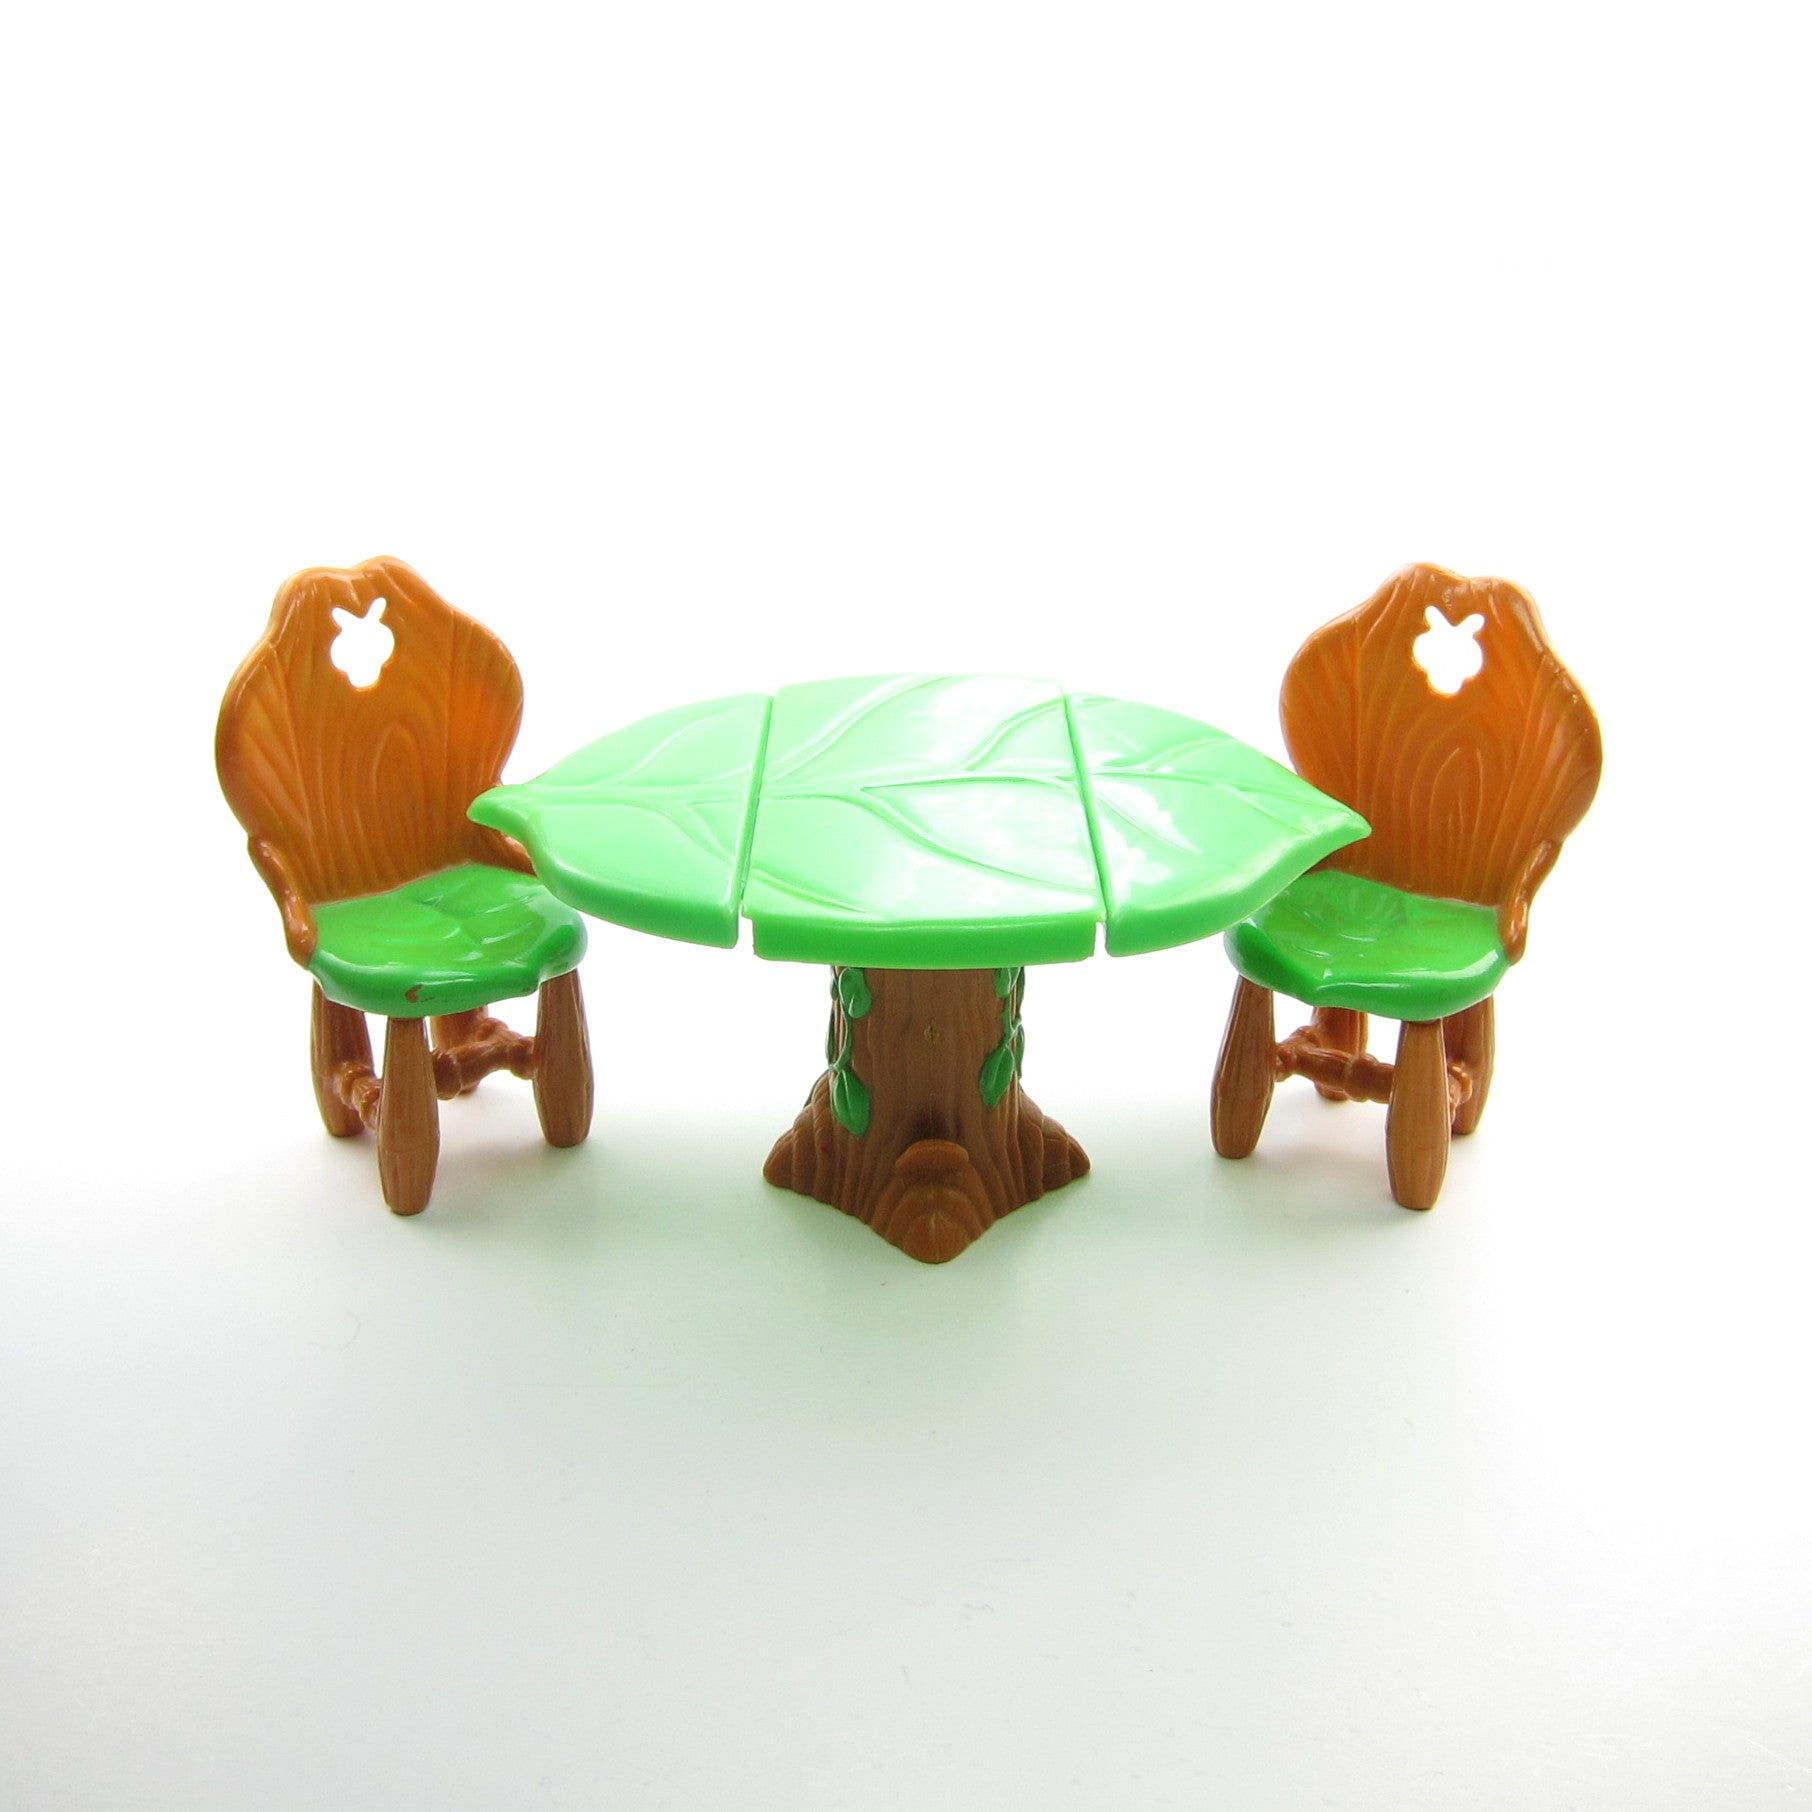 Dining room table and chairs for Berry Happy Home dollhouse